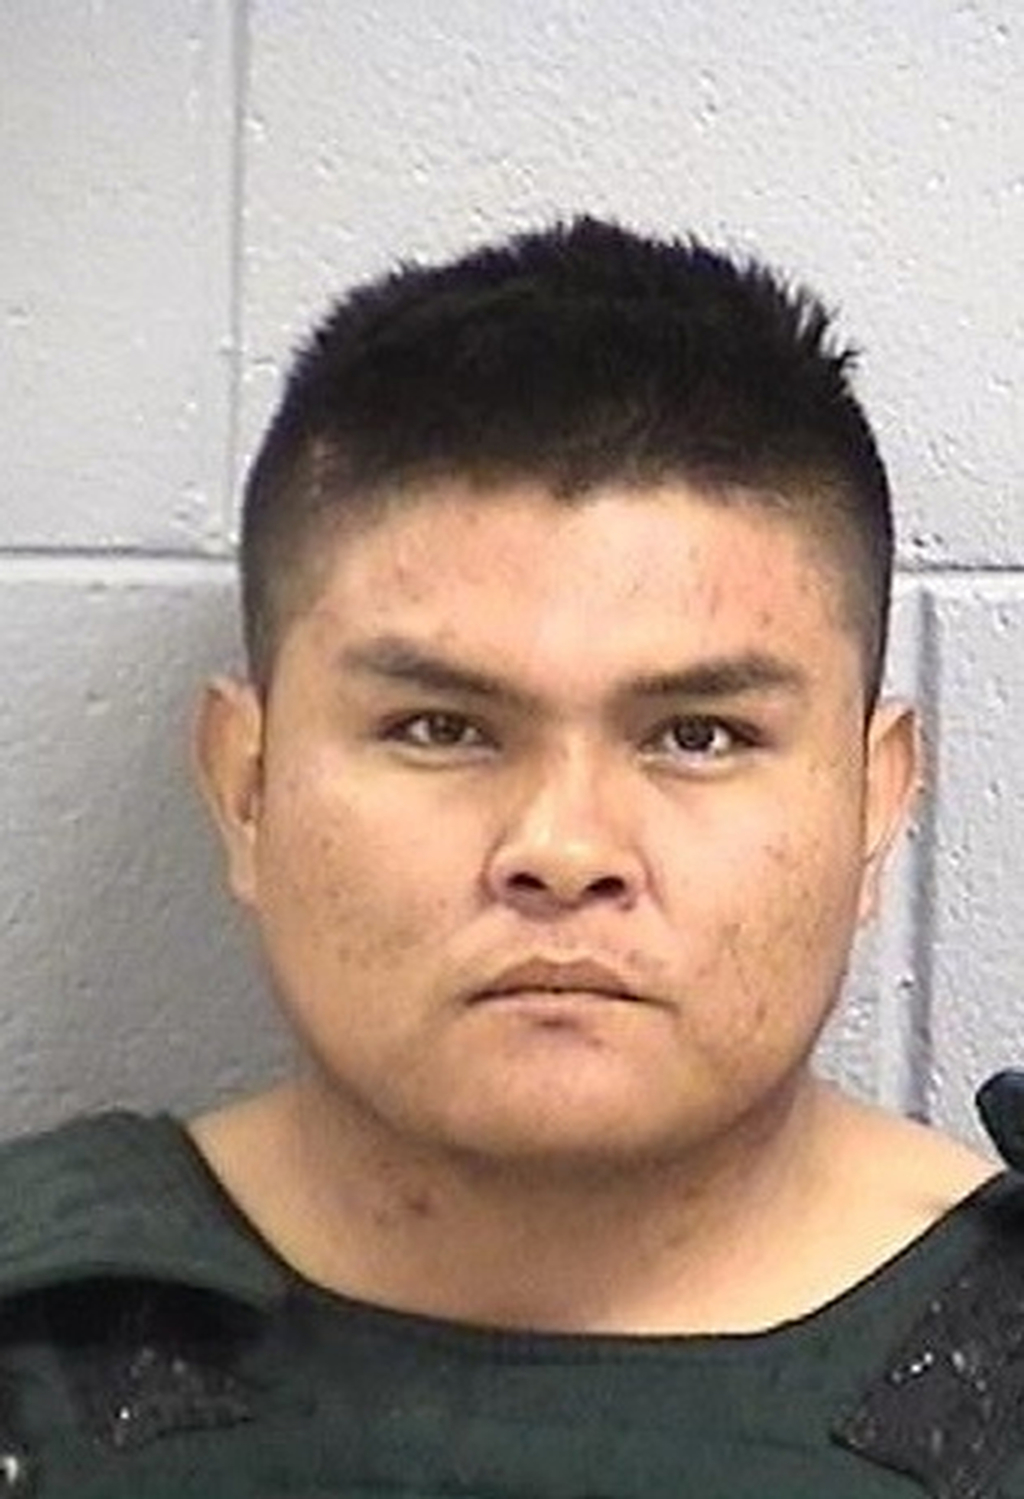 FILE - This undated file photo provided by San Juan County, N.M. Detention Center shows Tom Begaye of Waterflow, N.M. More than a year after authoriti...